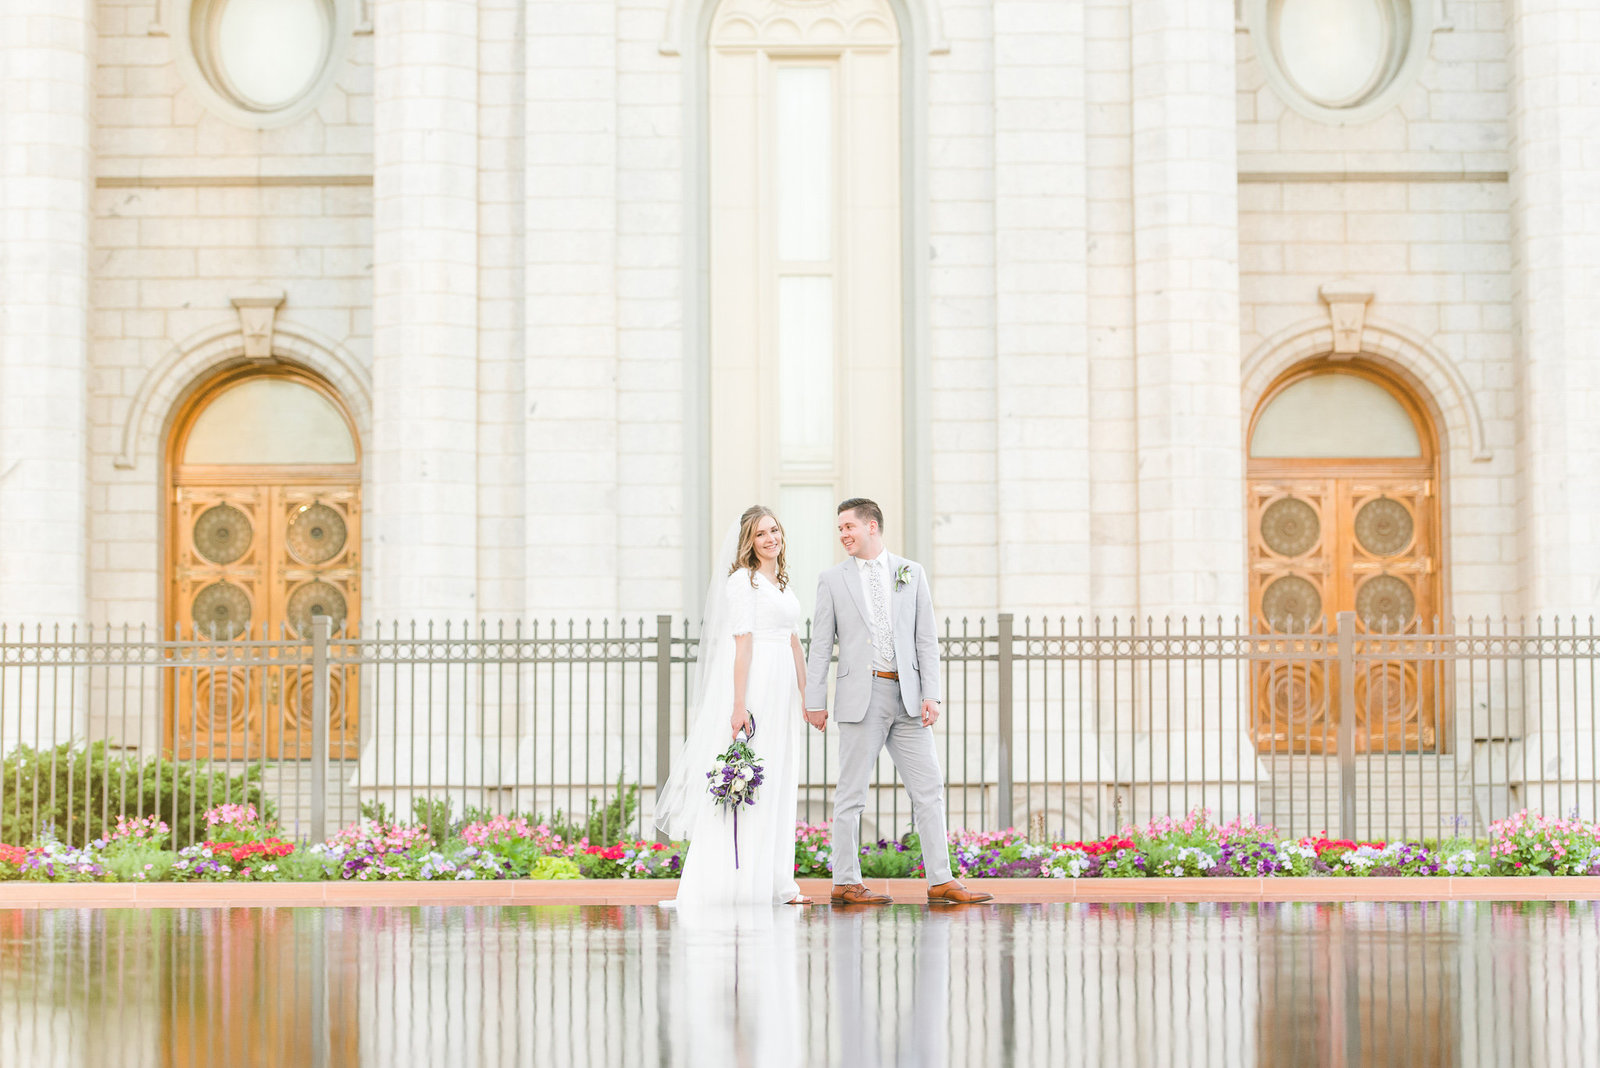 Utah Wedding Photographers - Jessie and Dallin Photography RE-17